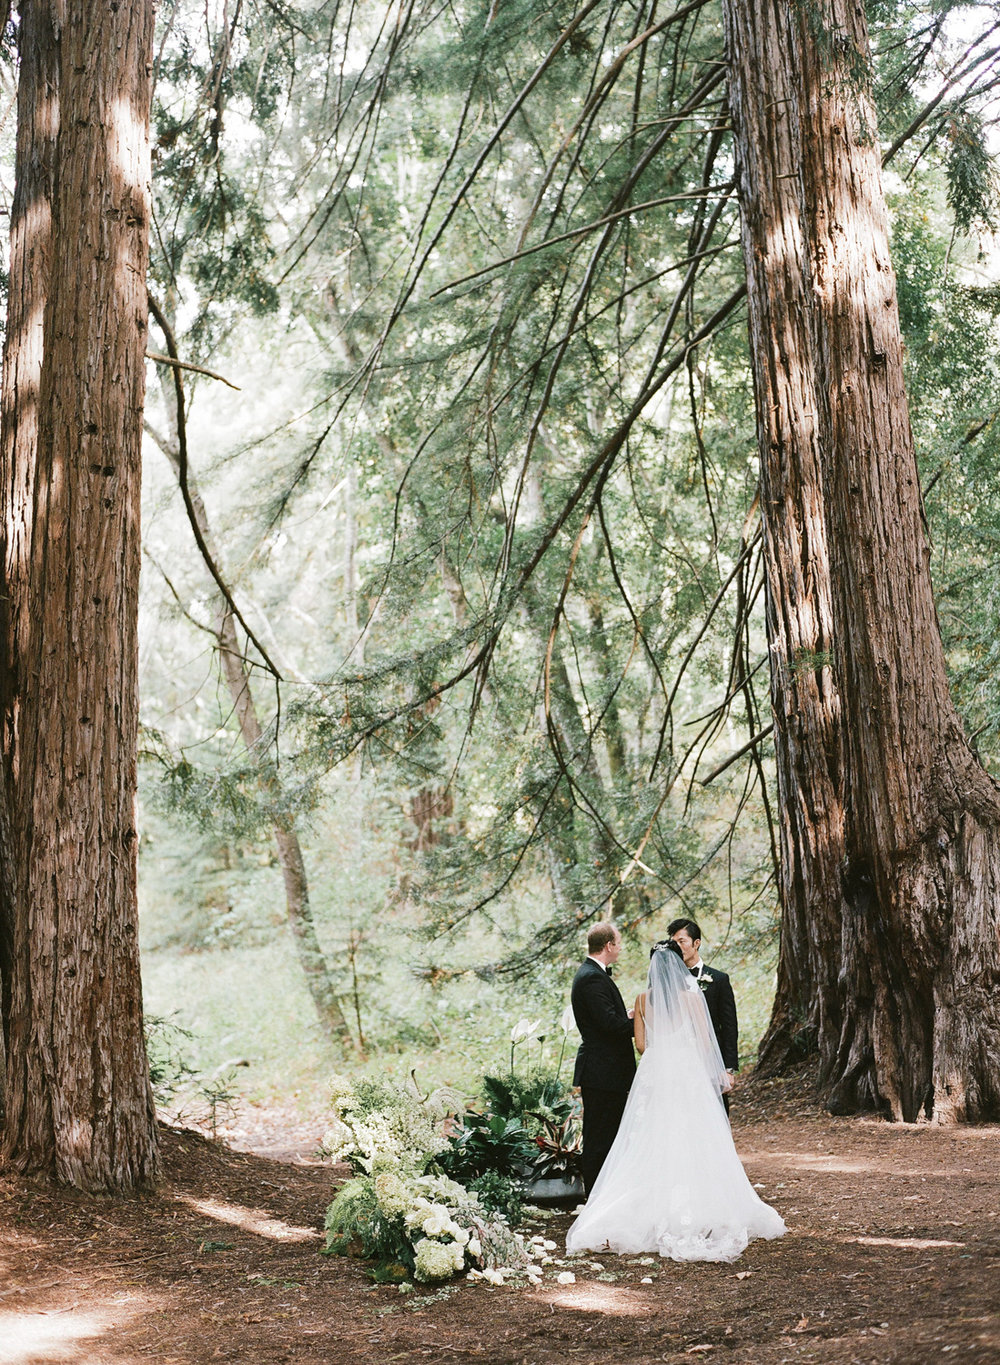 Bride and groom during a forest ceremony in the Santa Lucia Preserve in Carmel, California; Sylvie Gil Photography